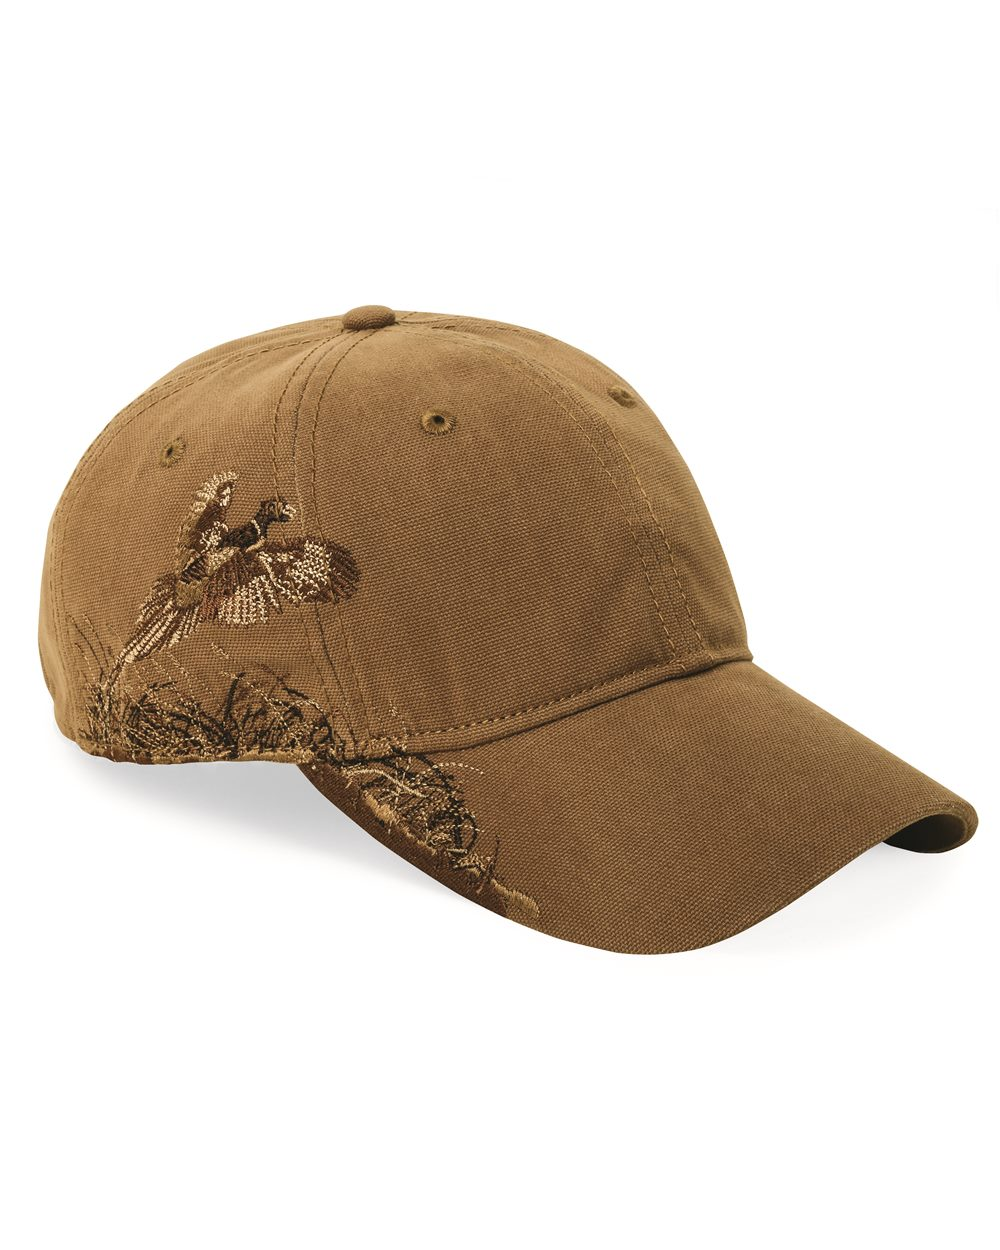 DRI DUCK 3352 - Pheasant in Flight Cap